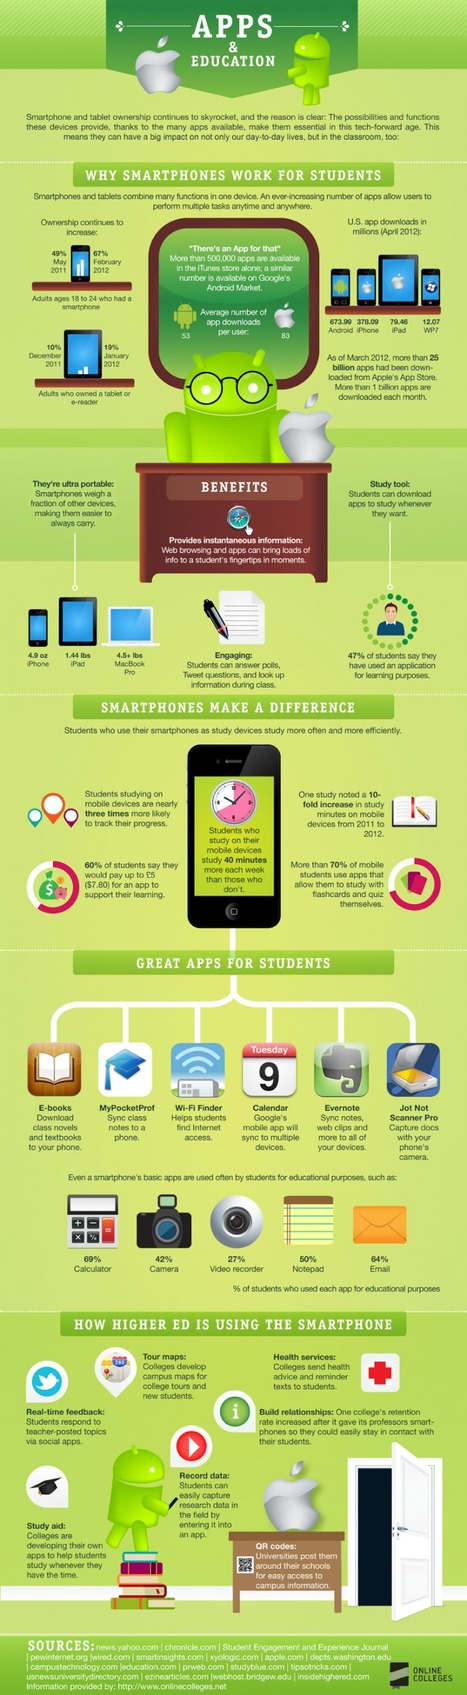 The 60-Second Guide To Smartphones In Education | Edudemic | The Slothful Cybrarian | Scoop.it